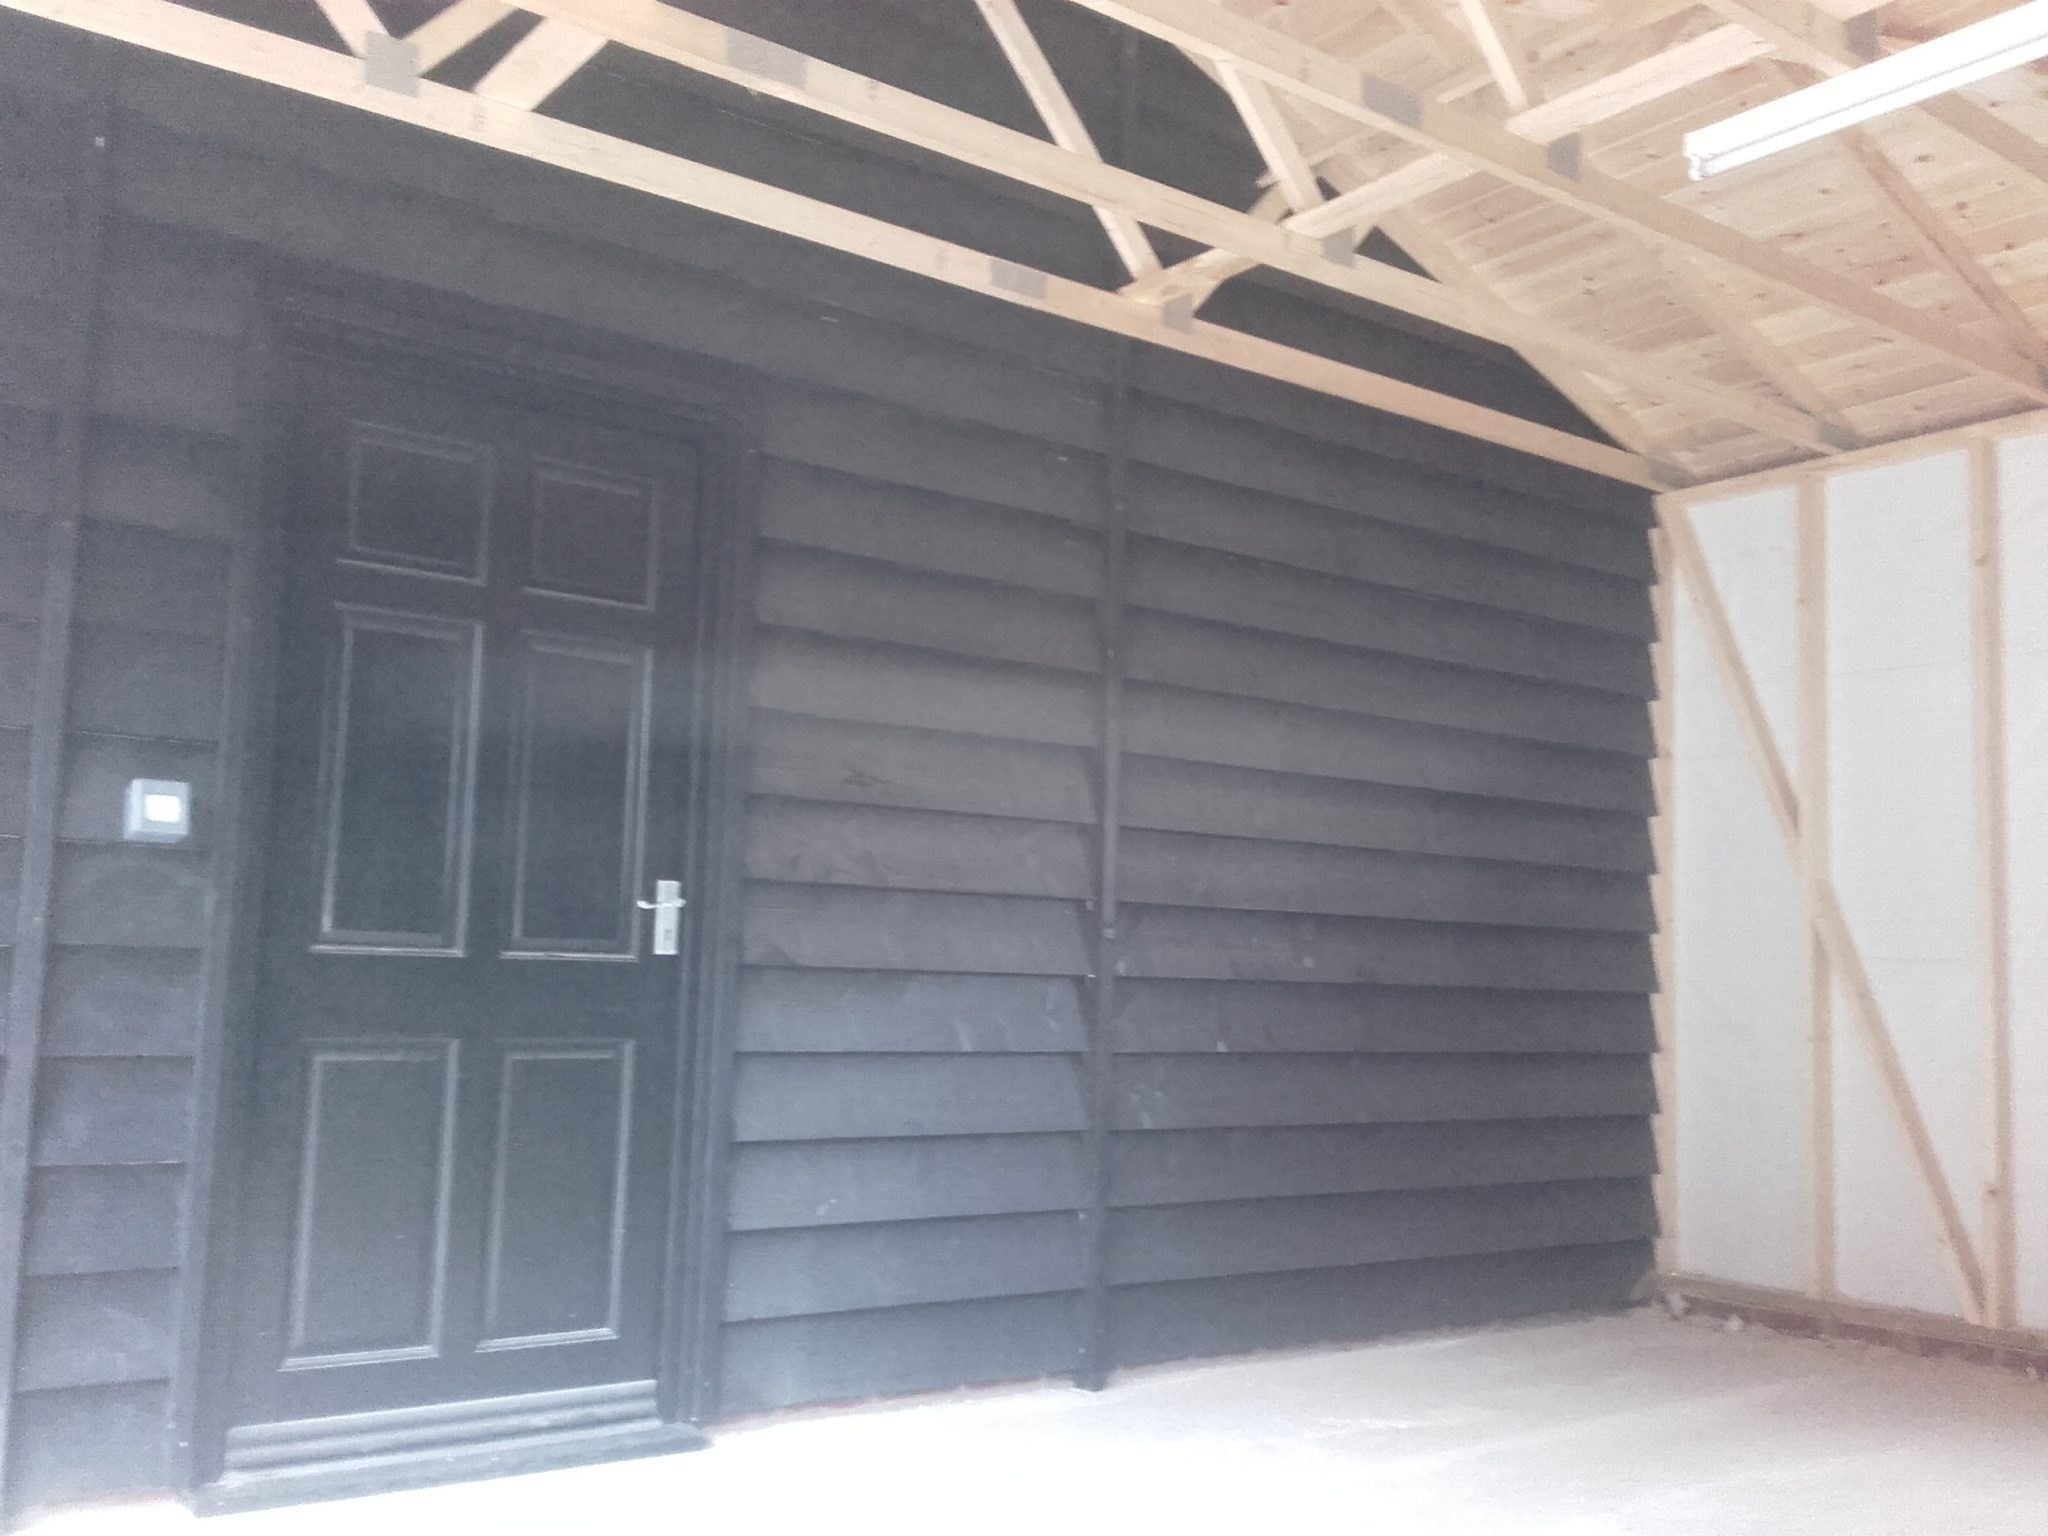 50 x 20 Featheredge With Insulation